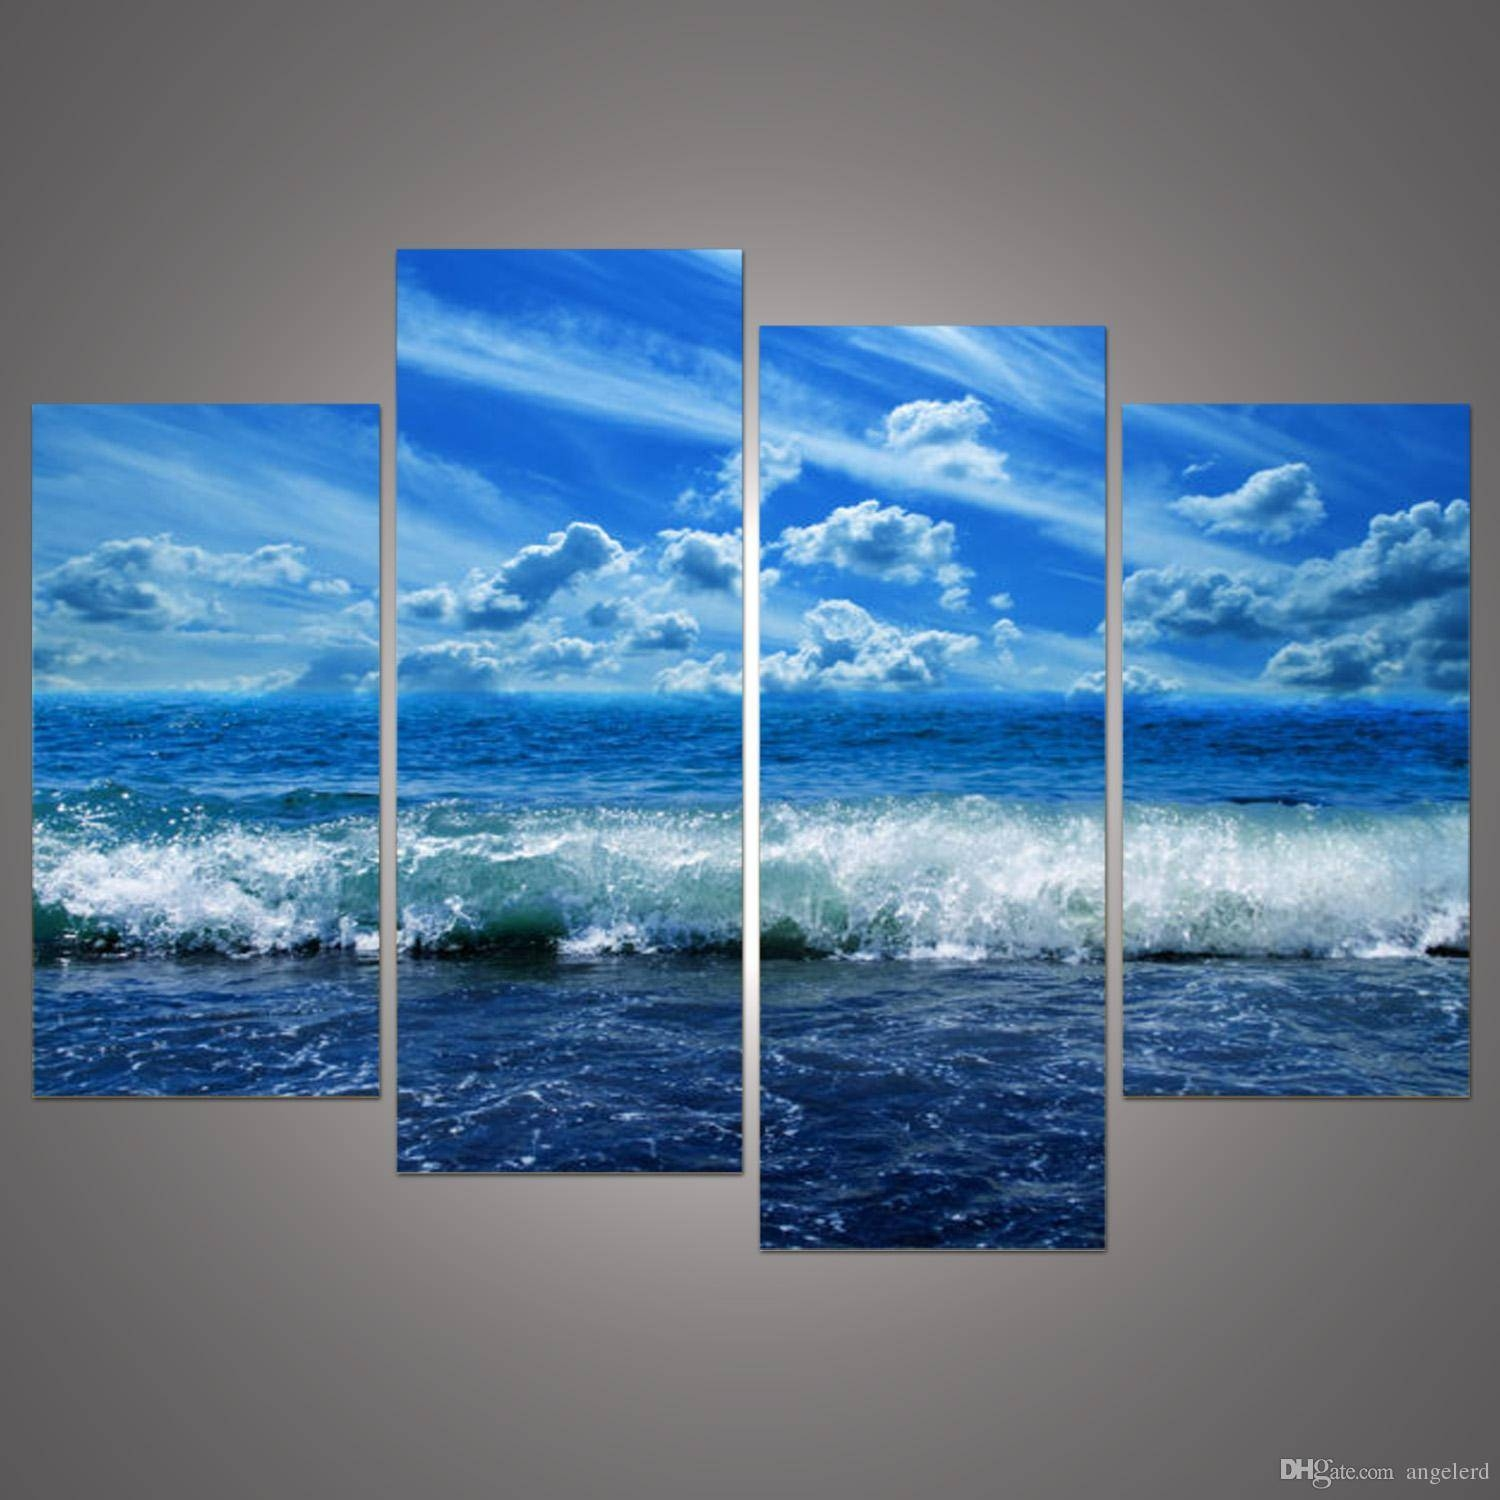 Online Cheap Paintings Modular Paintings Sky Clouds Wall Art Pertaining To Most Current Multi Panel Canvas Wall Art (View 11 of 20)